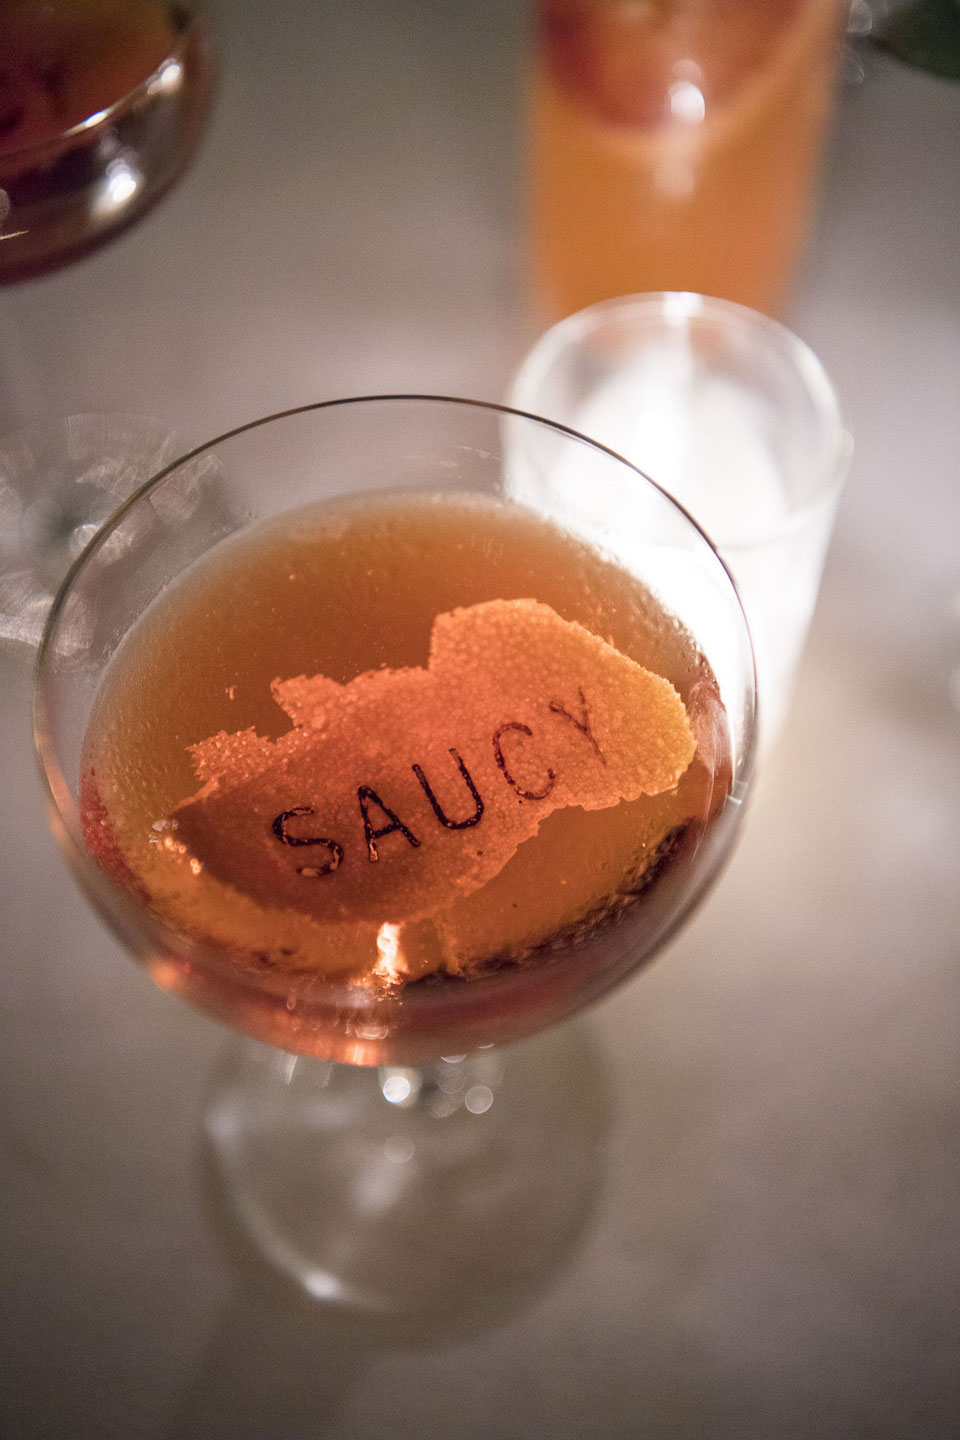 A cocktail garnished with an orange zest branded with the word saucy